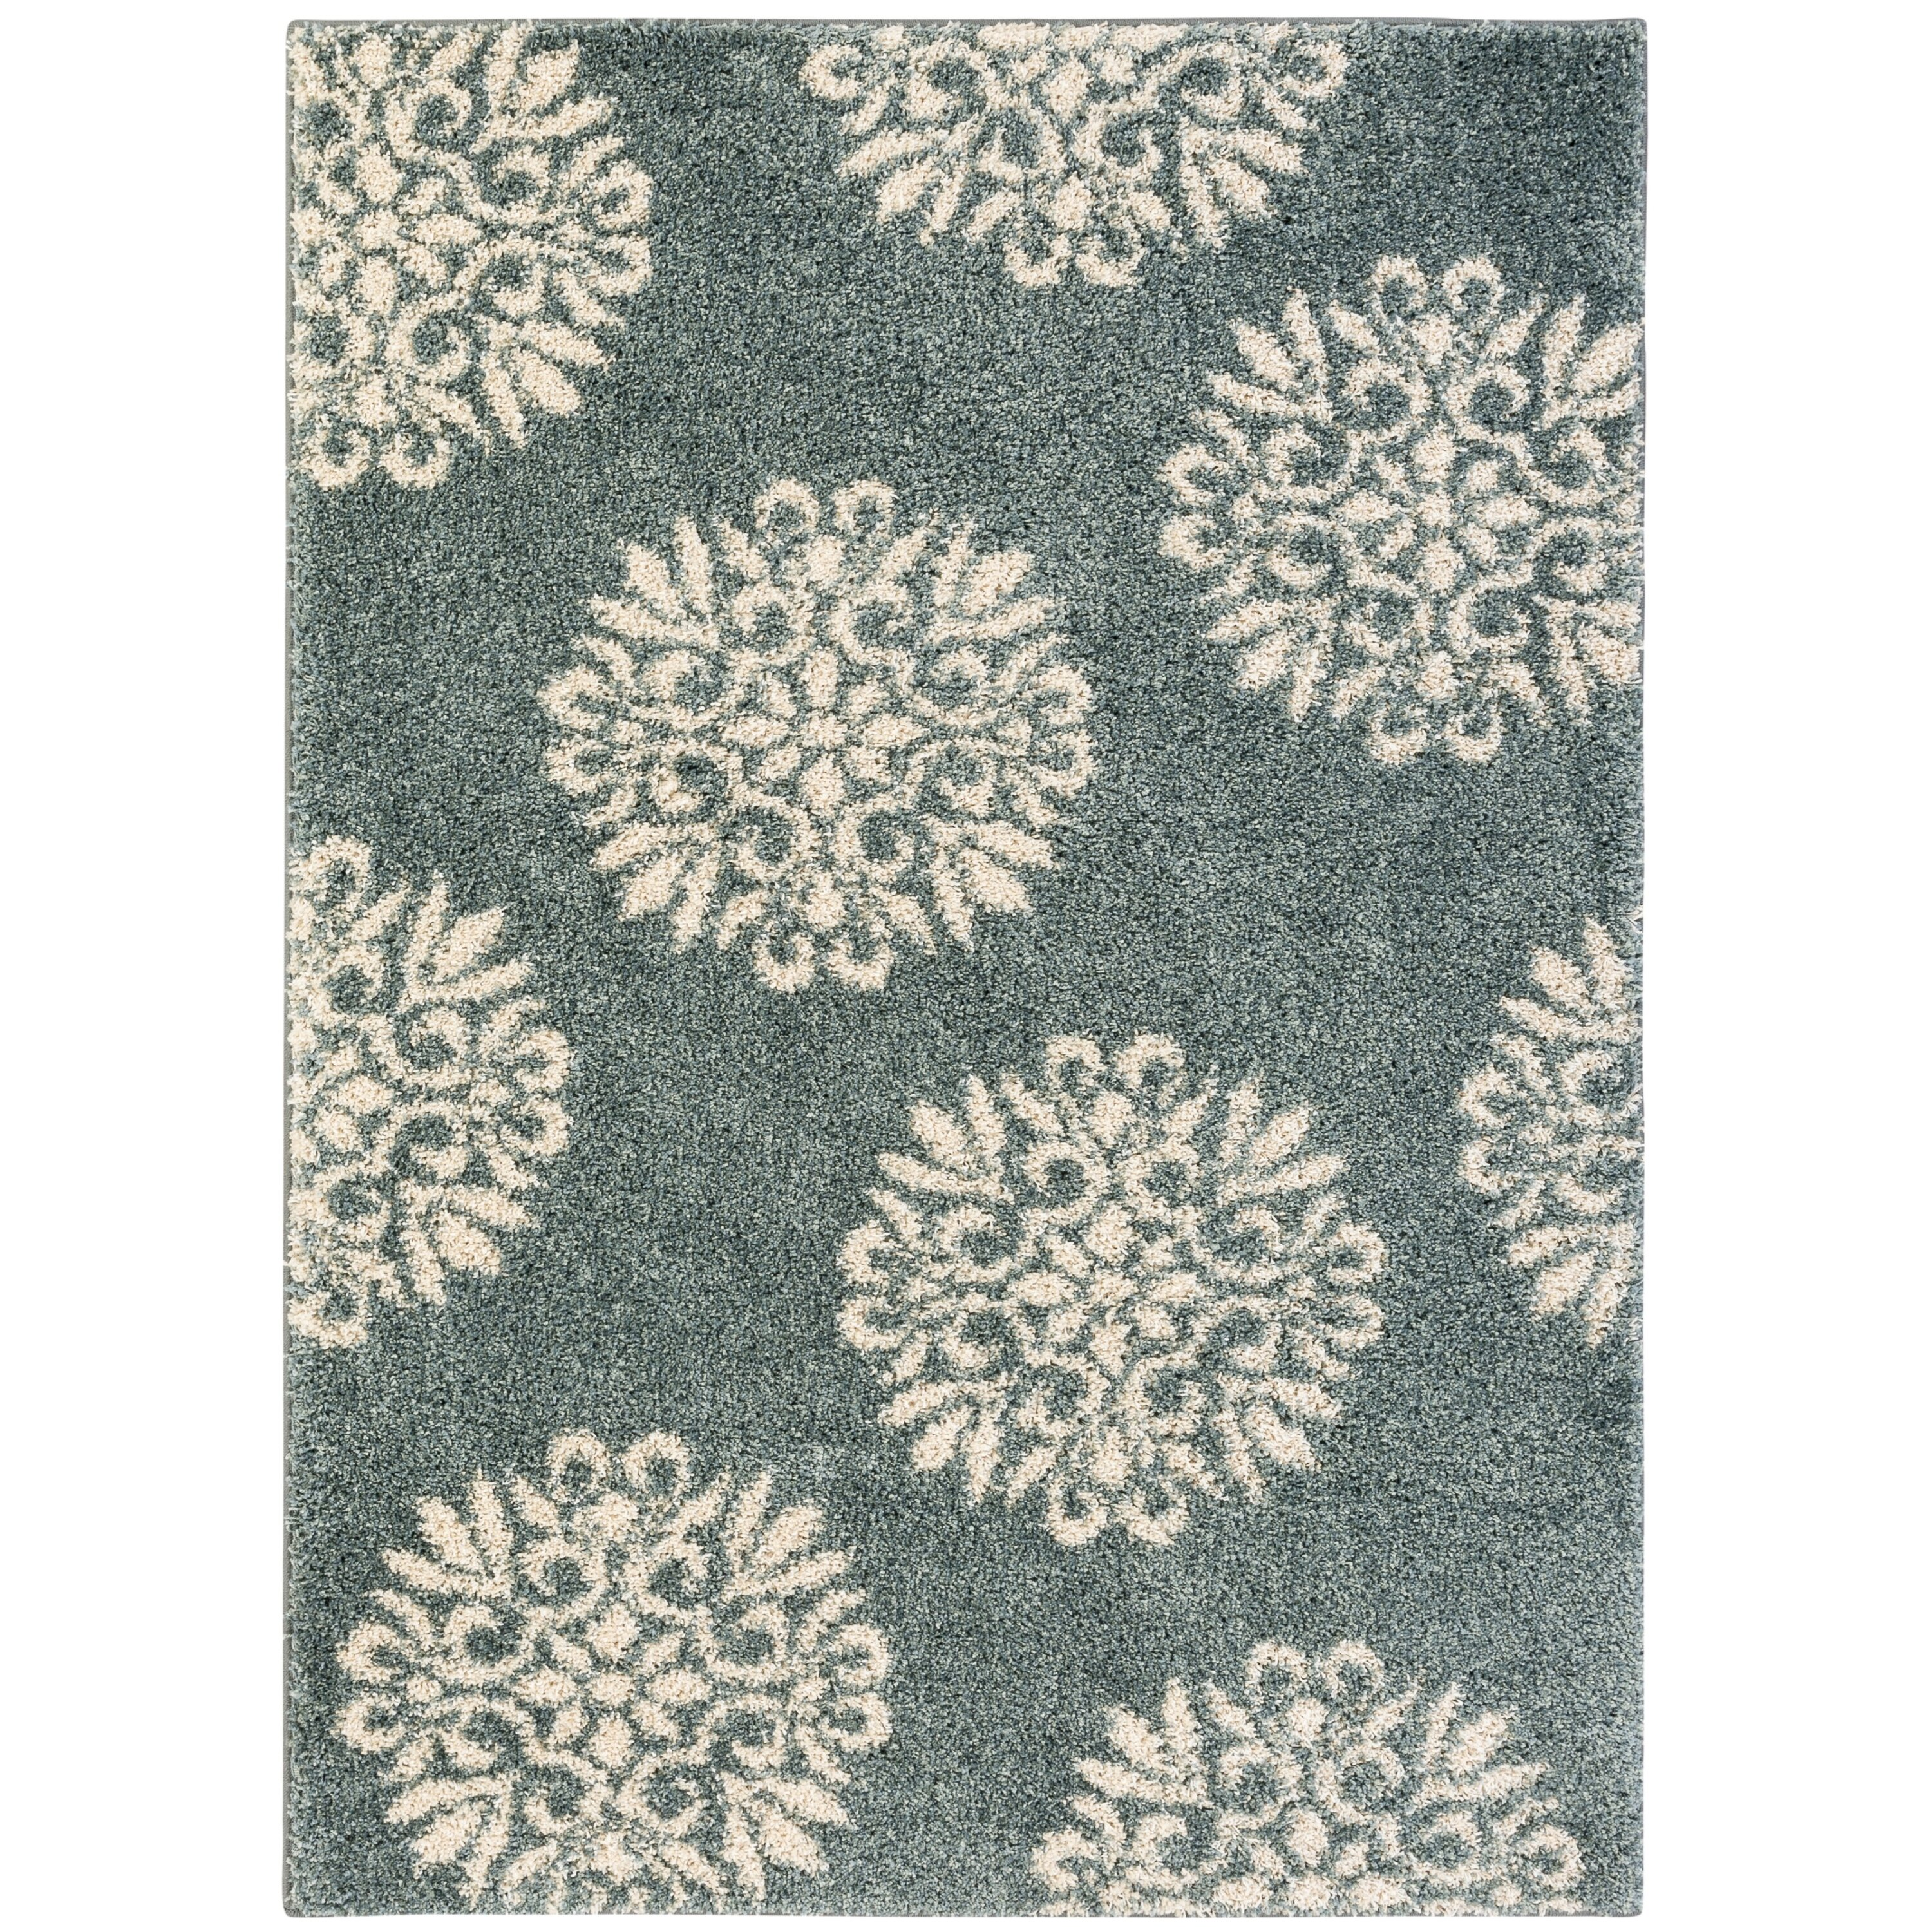 Mohawk Rugs Discontinued Roselawnlutheran